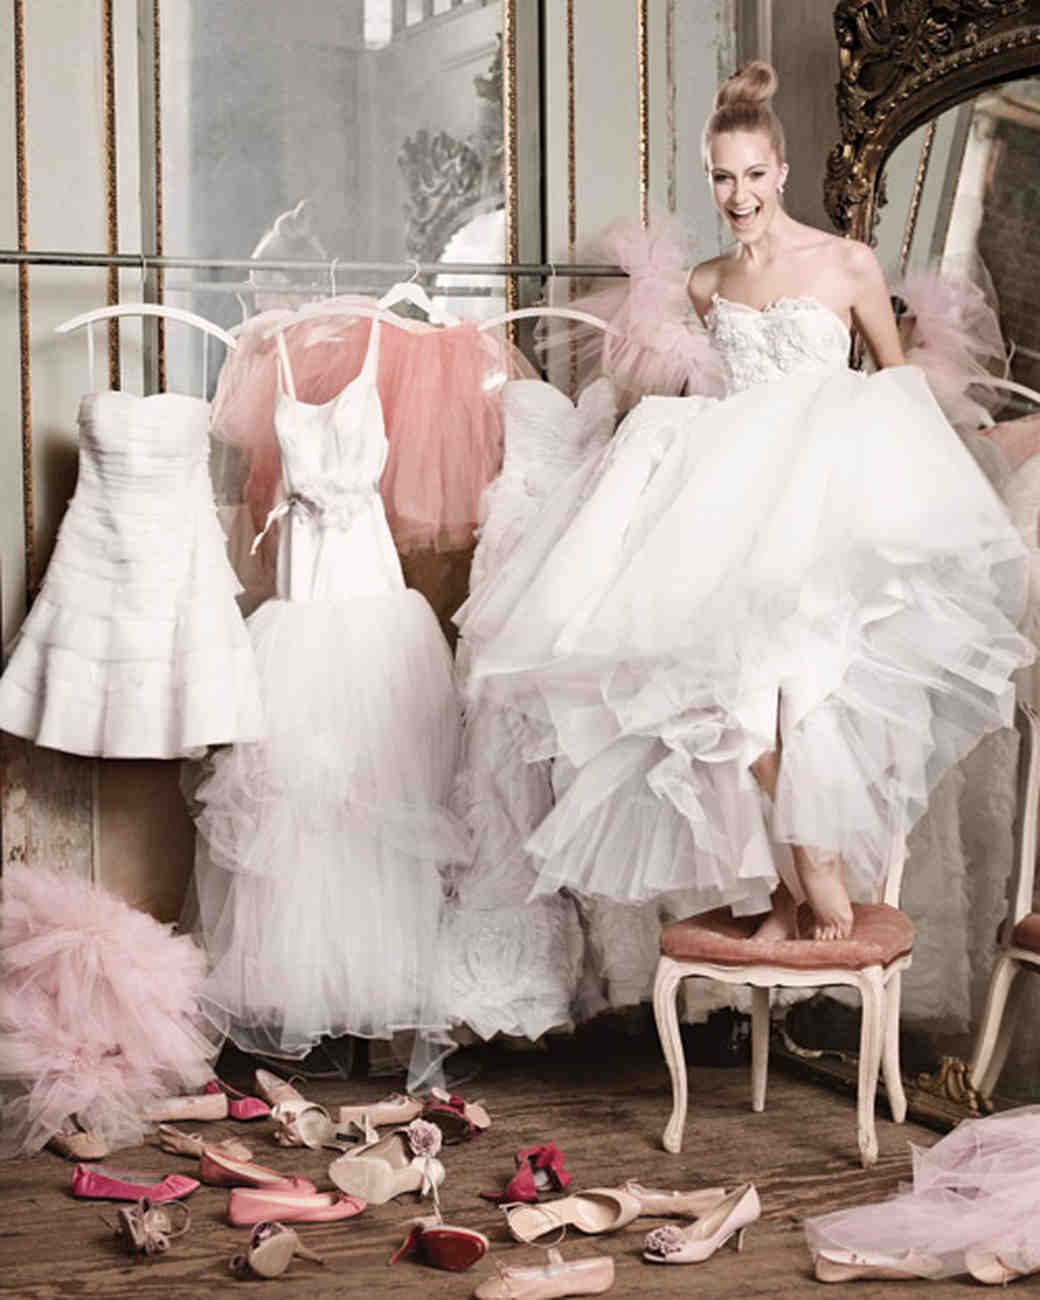 10 Tips for Choosing Your Wedding Dress